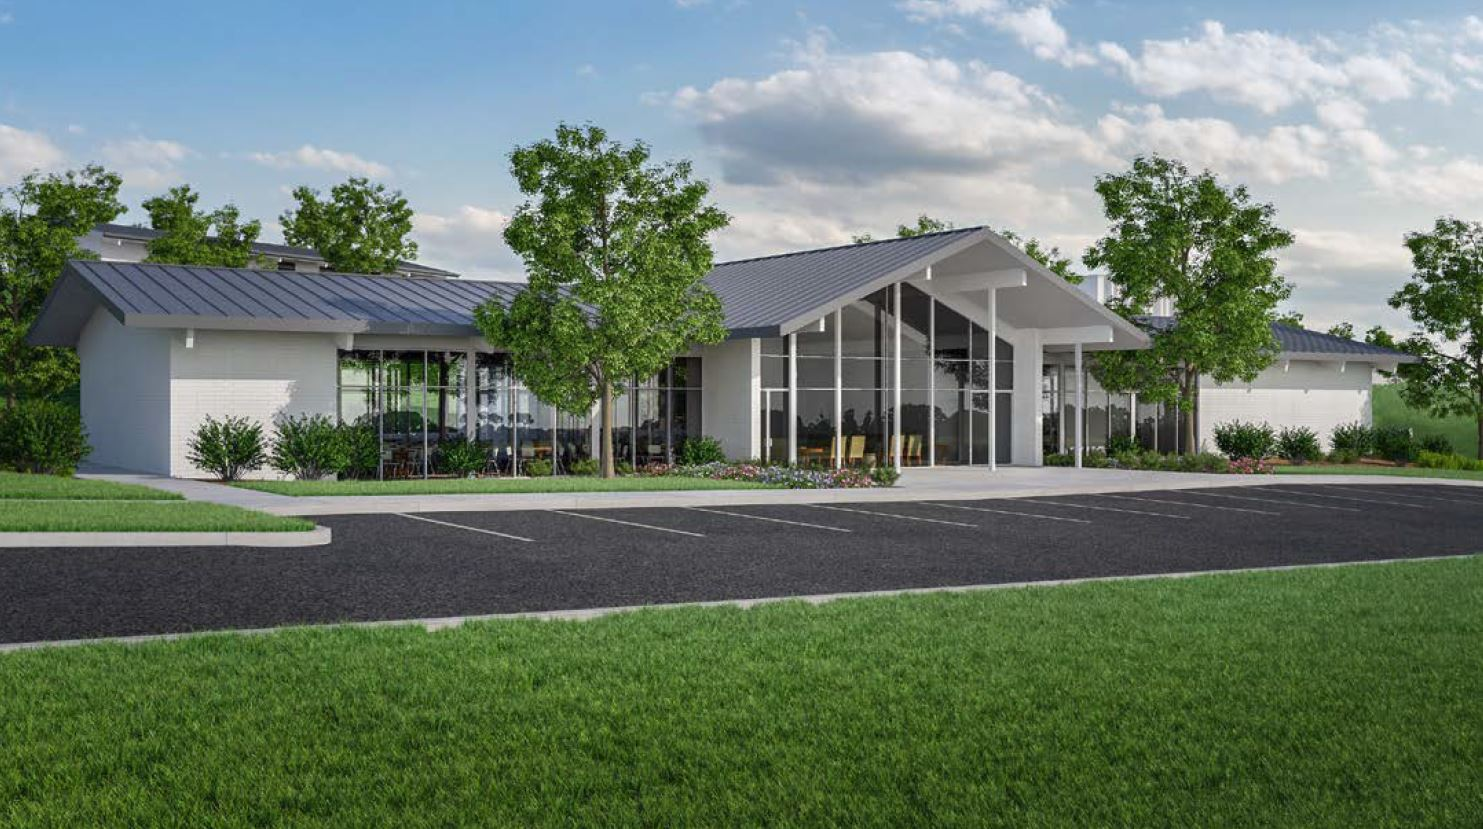 Rendering of Arrival Centre near the Hamilton New Zealand Temple.